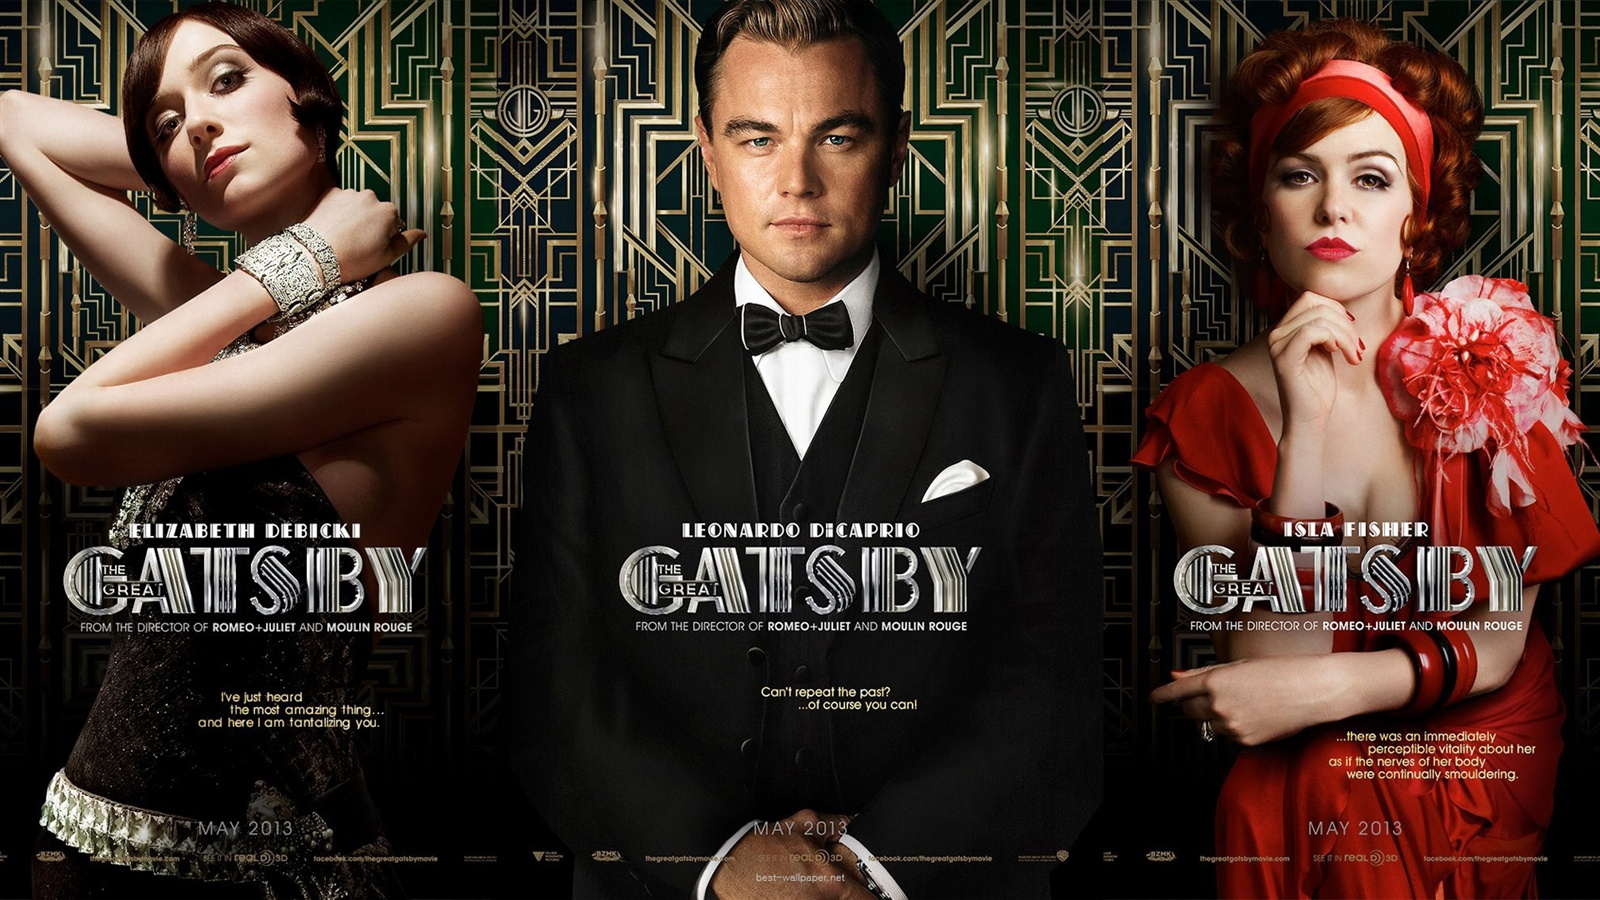 Wallpaper The Great Gatsby HD 1920x1080 Full Picture Image